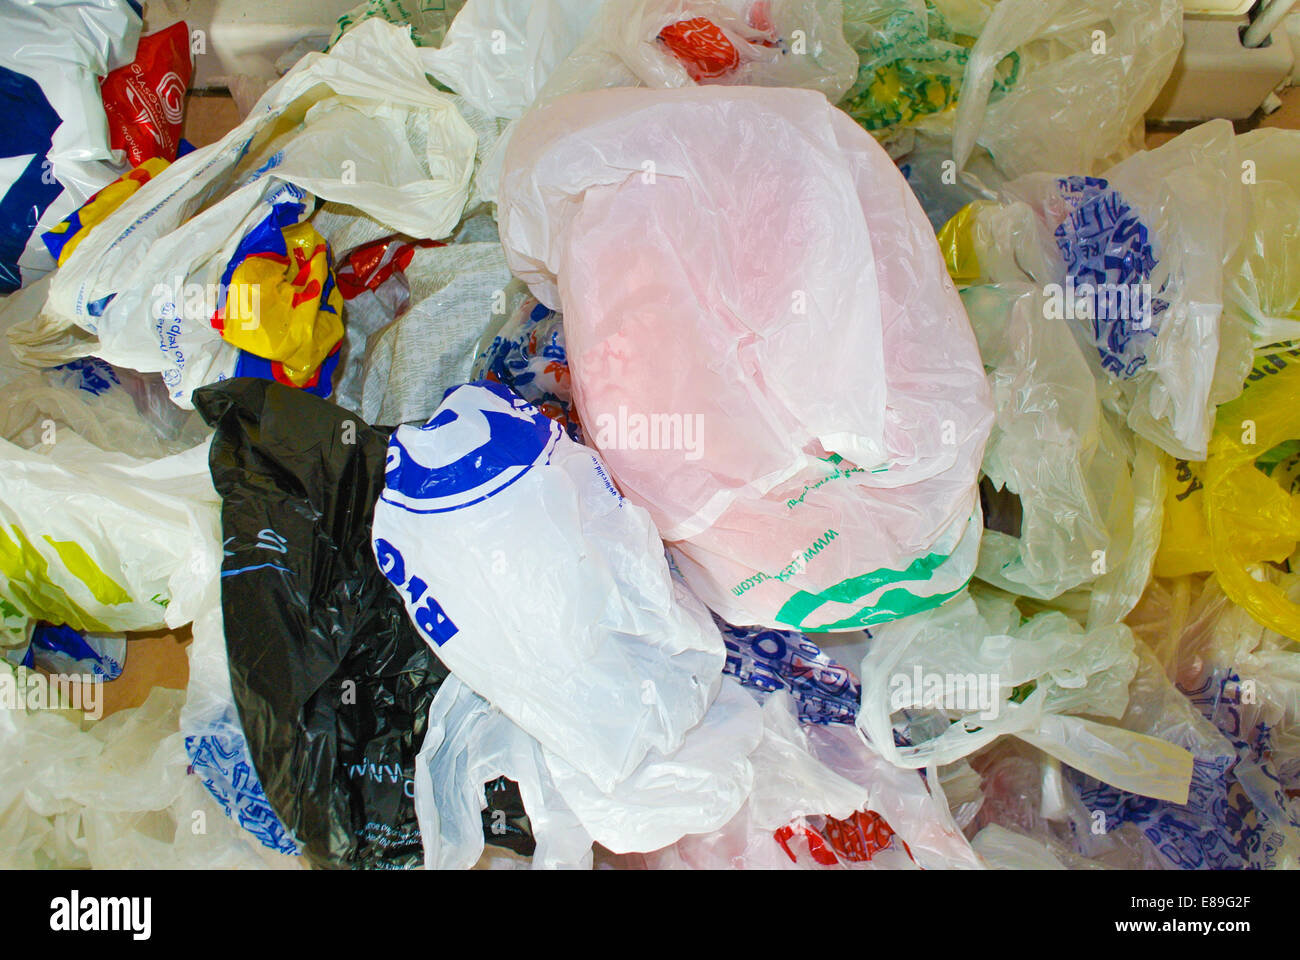 Plastic bags ready to be recycled - Stock Image